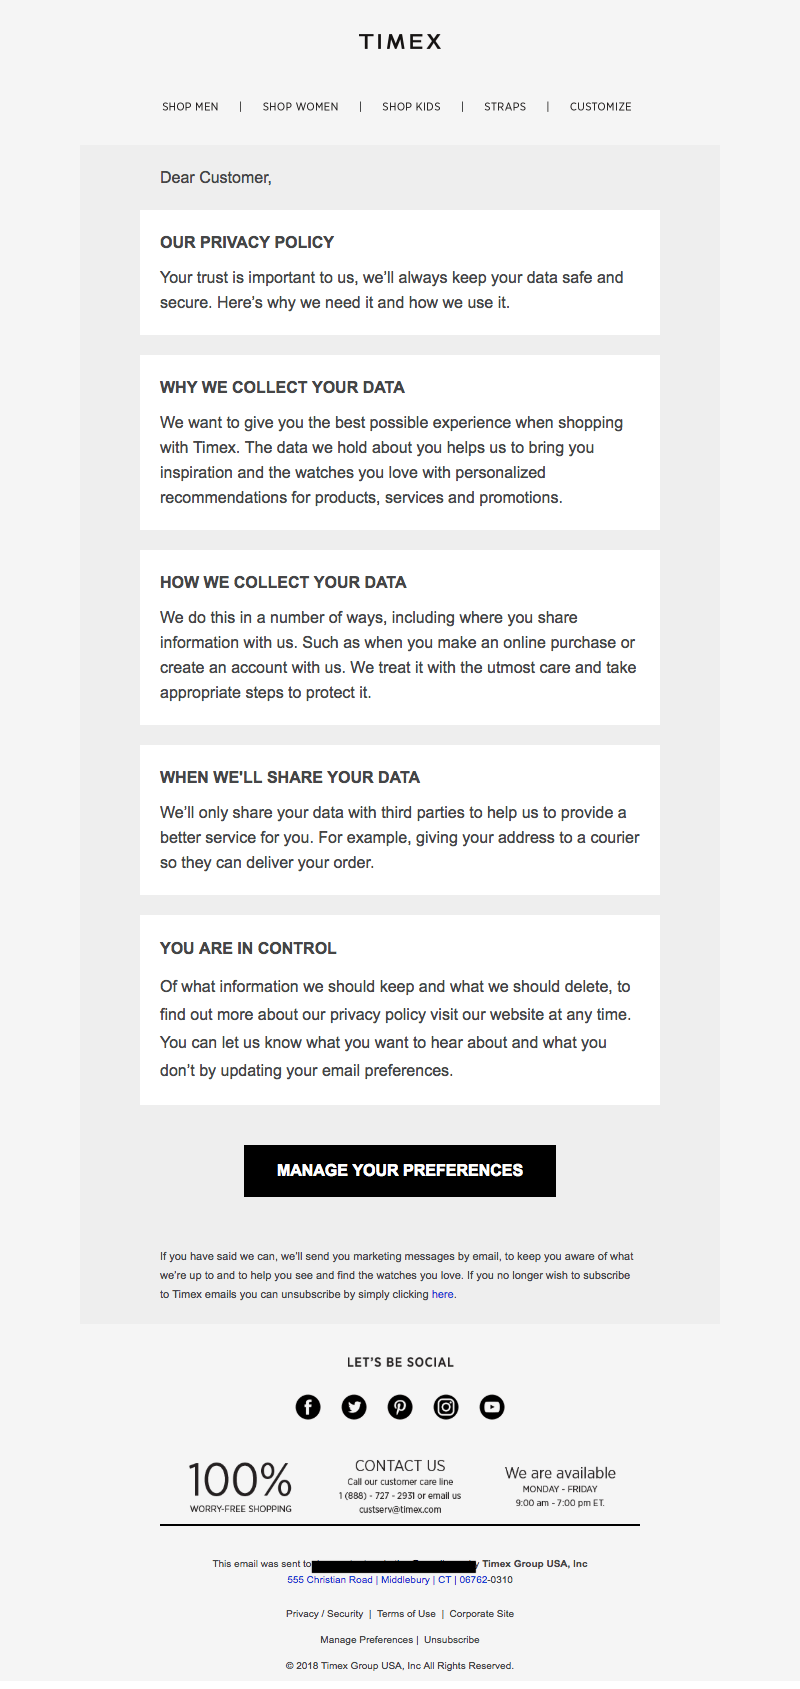 Timex GDPR emails